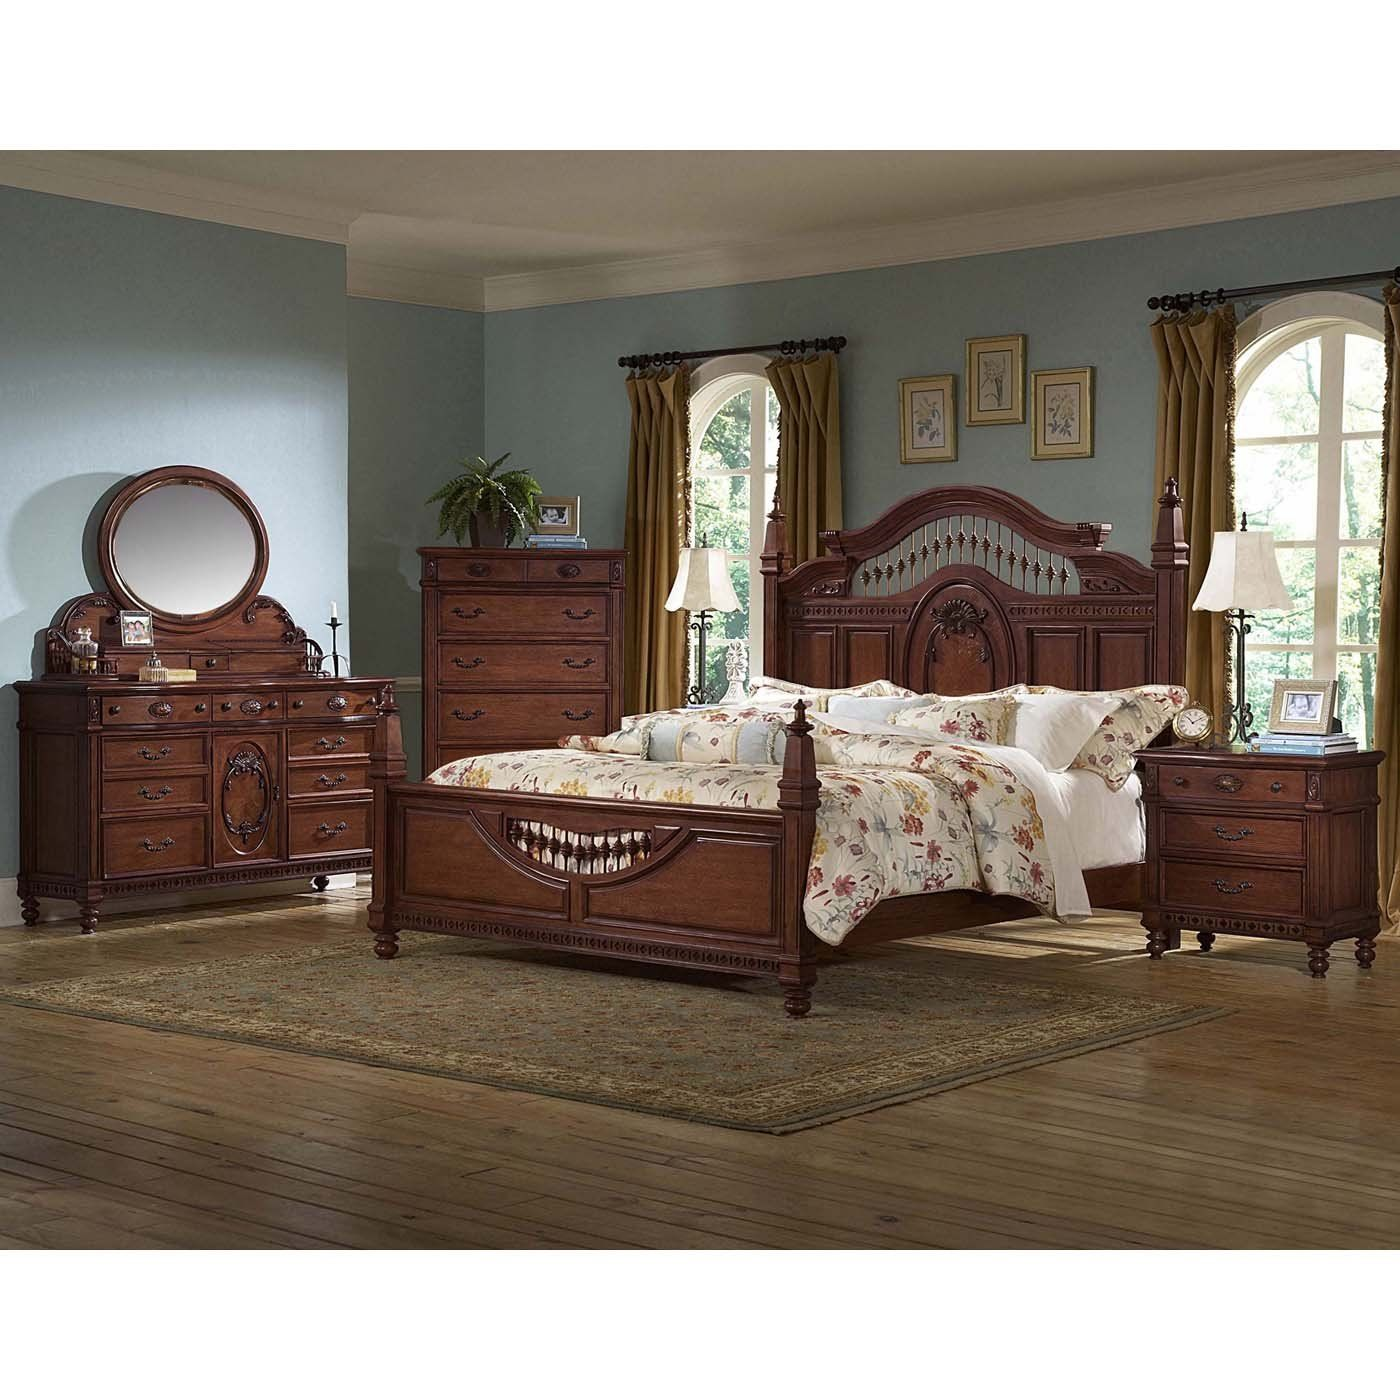 Vaughan Furniture 427 7pc Kathy Ireland Southern Heritage Seven Piece Bedroom Set Bedroom Set Furniture Bedroom Sets